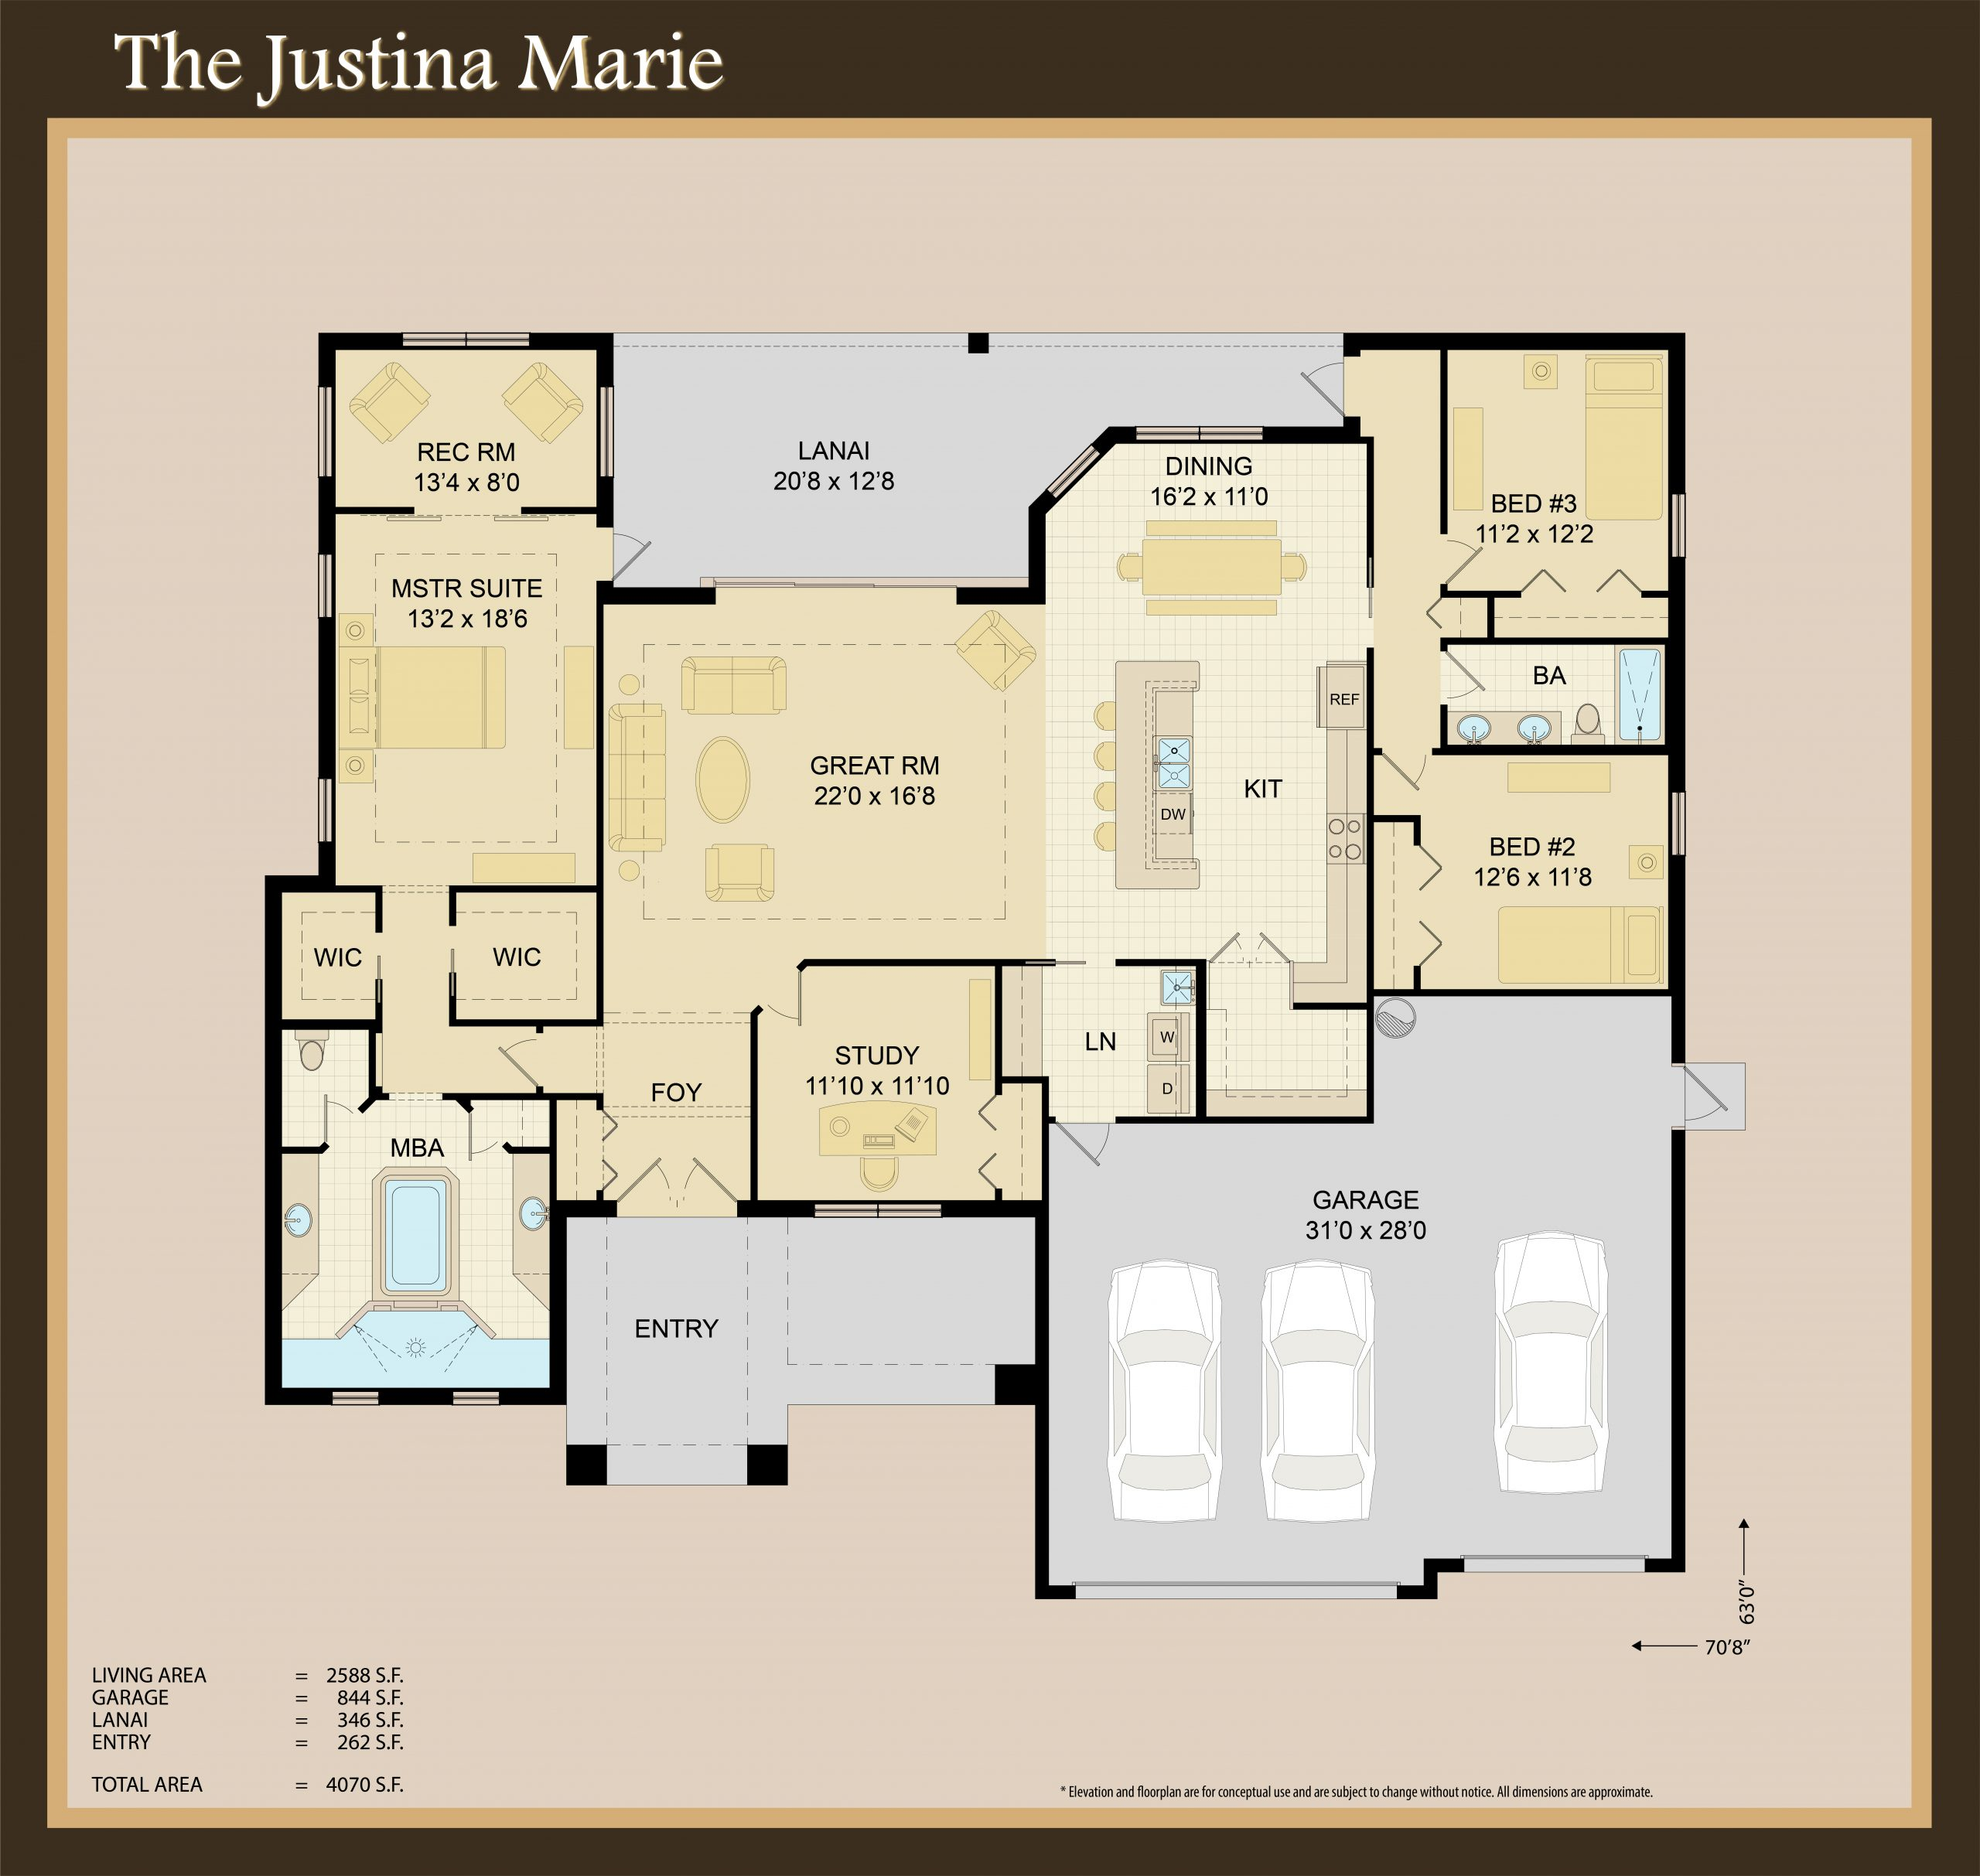 The Justina Marie Model